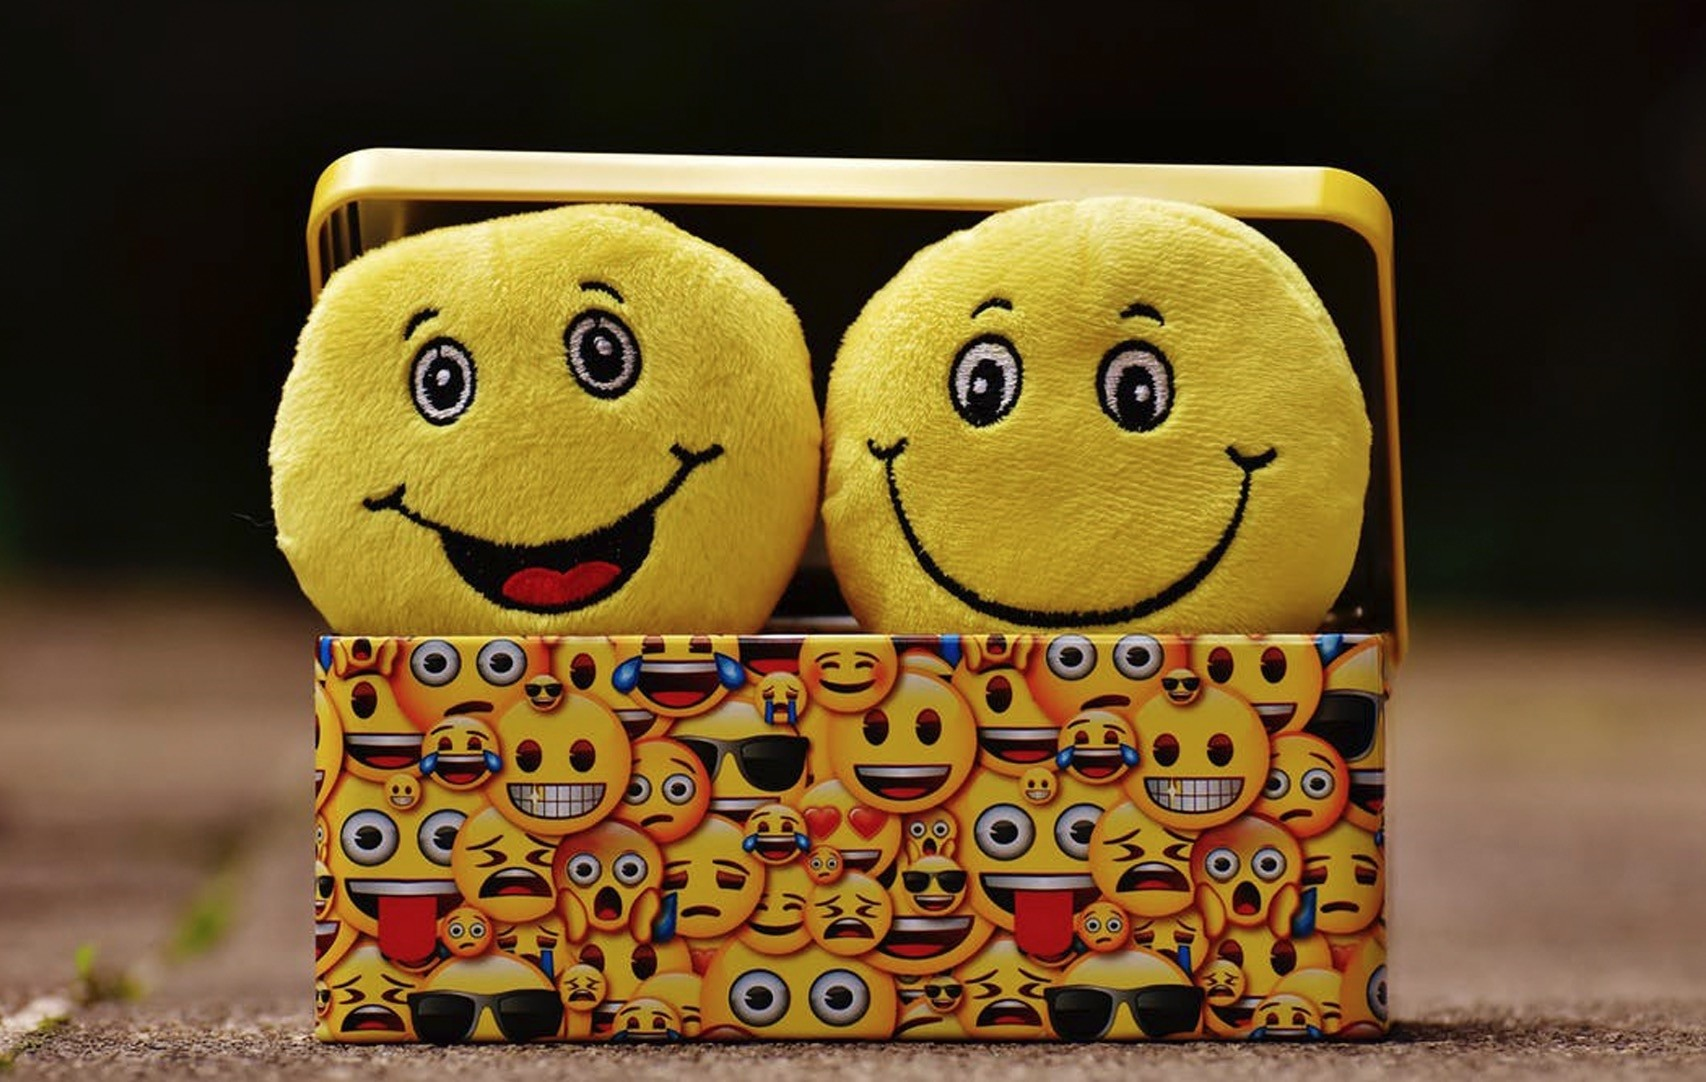 Emojis help people express their emotions but they can have different meanings in different cultures.